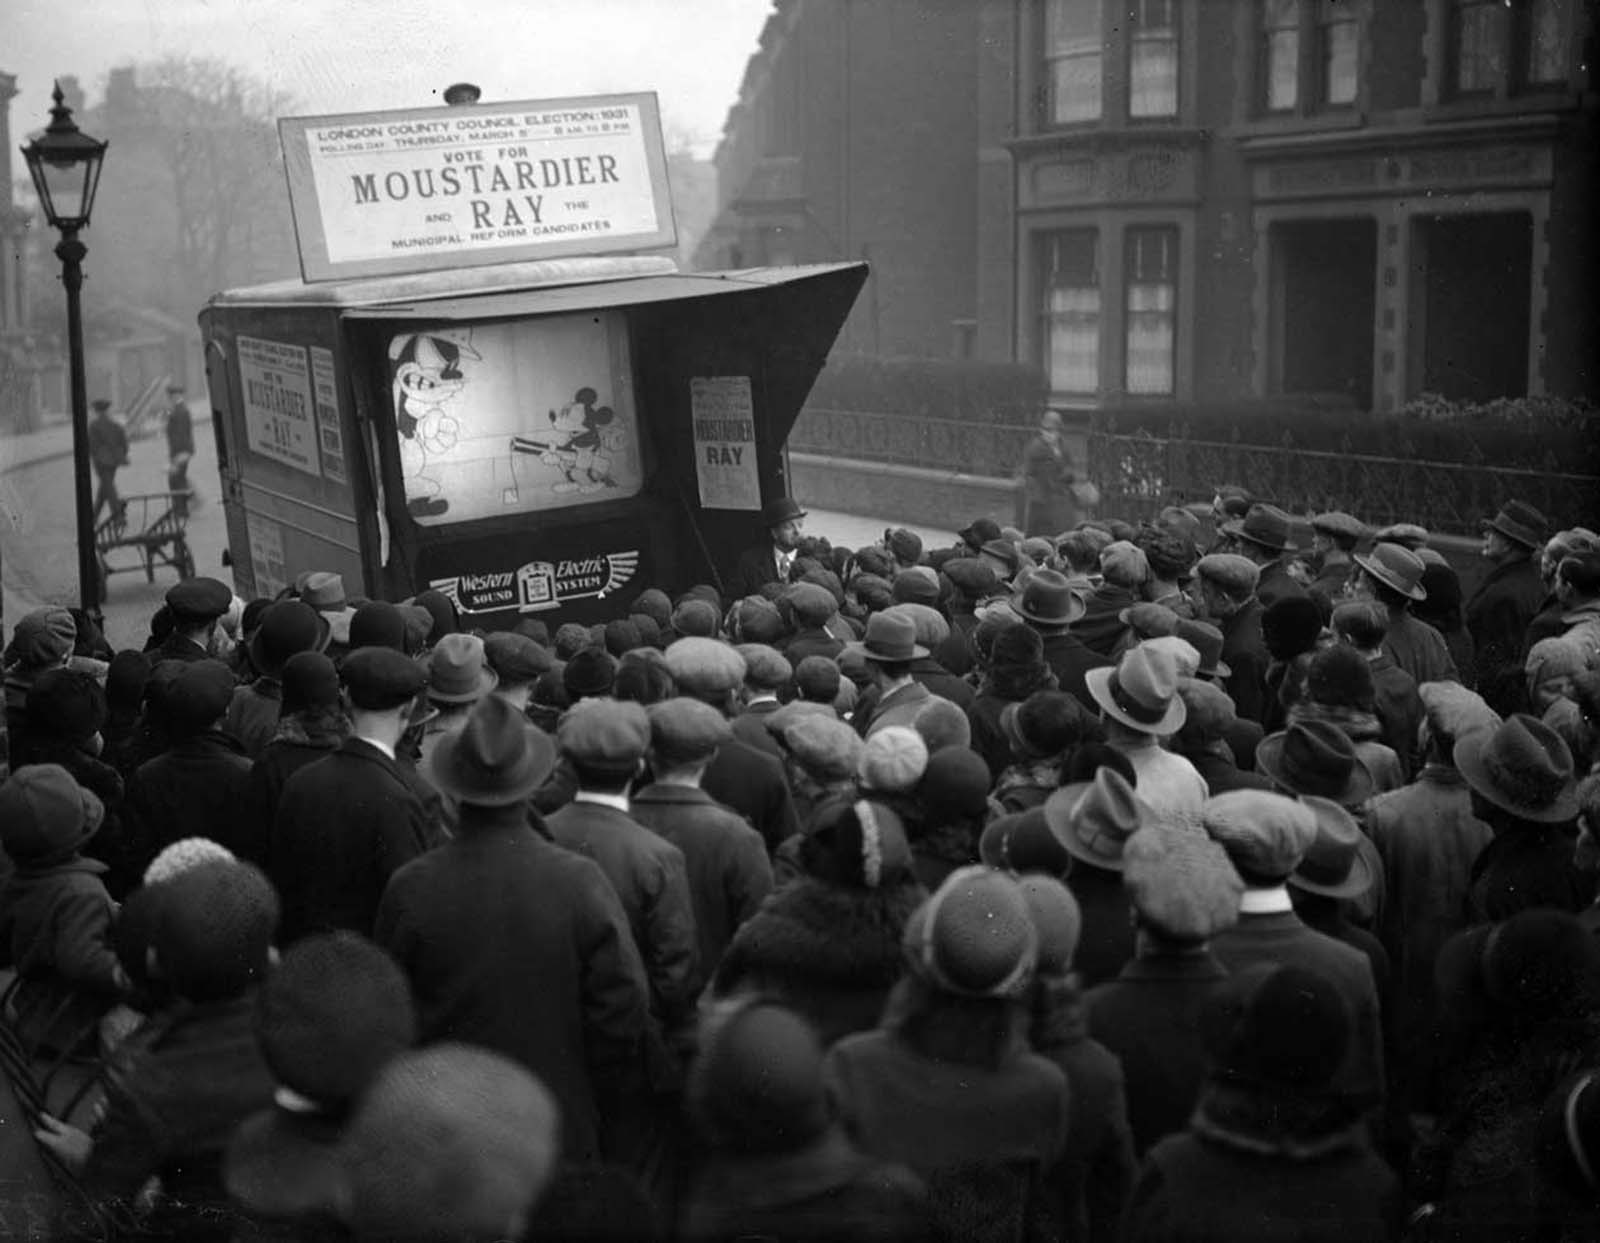 During a London County Council election campaign run, Mickey Mouse is showing on a small screen in a city street. 1931.